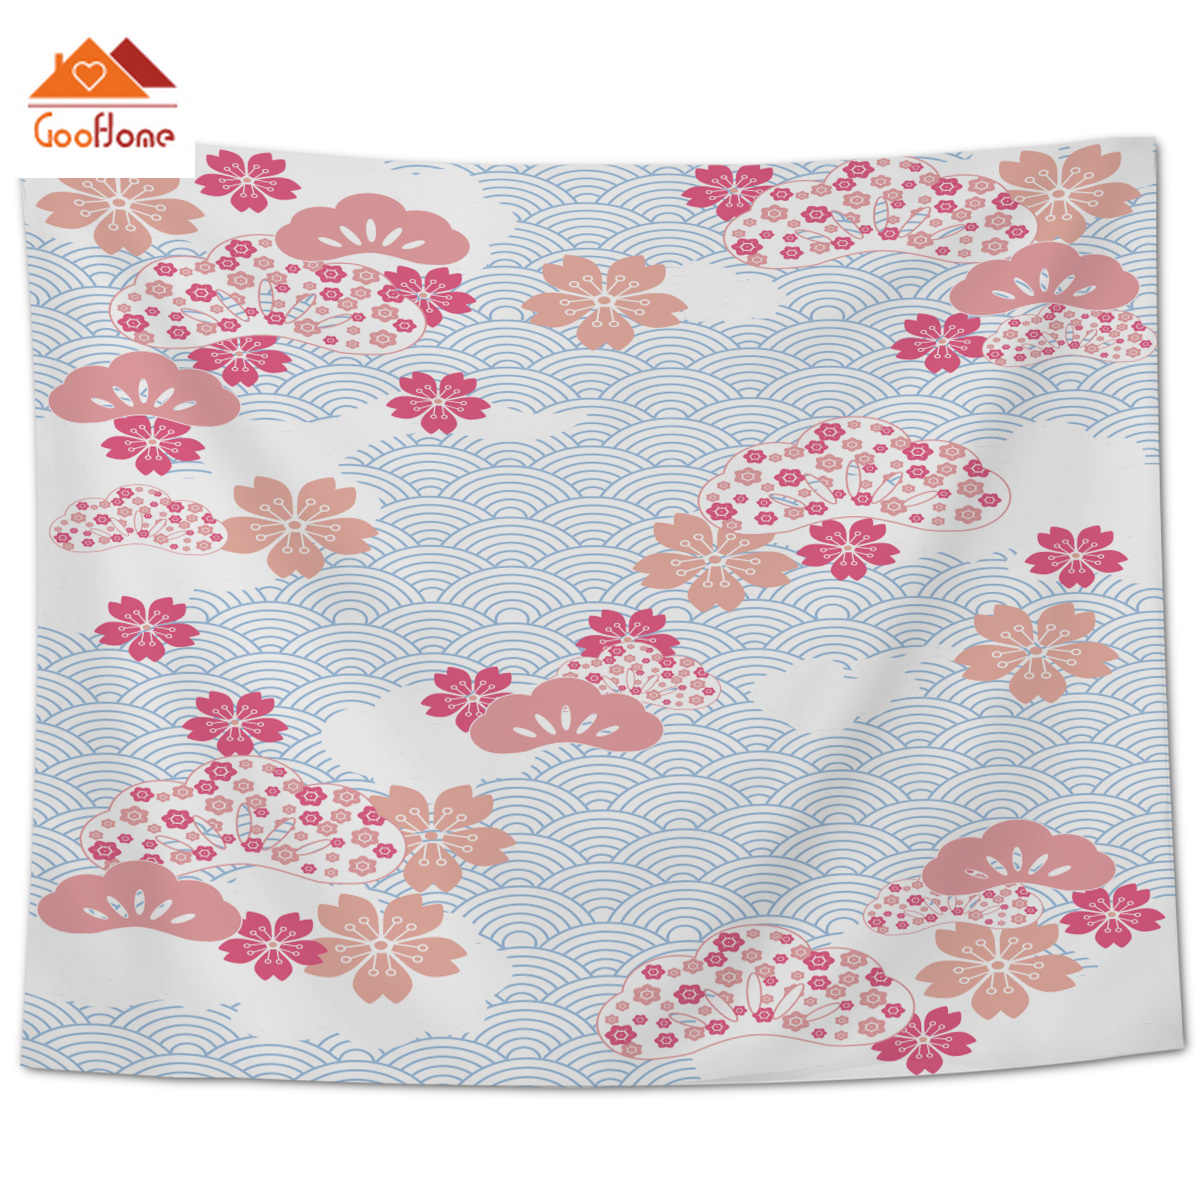 Goohome Japan Cherry Blossoms Wall Decor Wall Decor Bedspread Tapestry Coverlet Bedding Scarf Throw Sheet Hypoallergenic